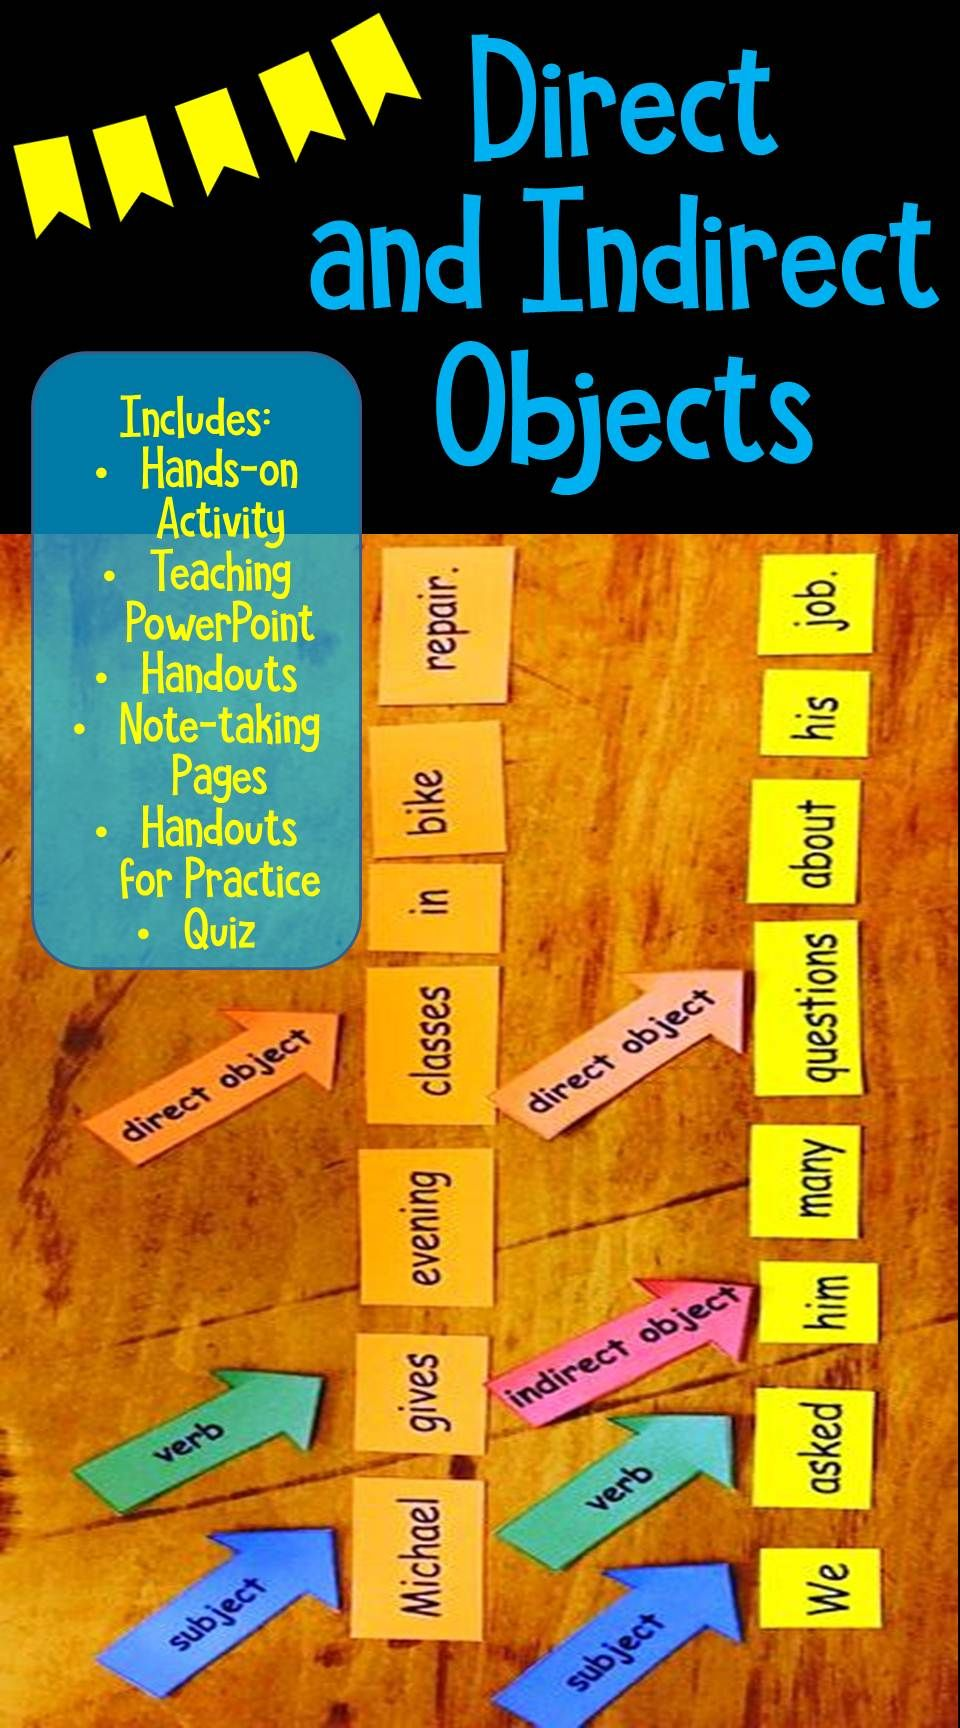 26+ Exclusive direct and indirect objects ideas in 2021